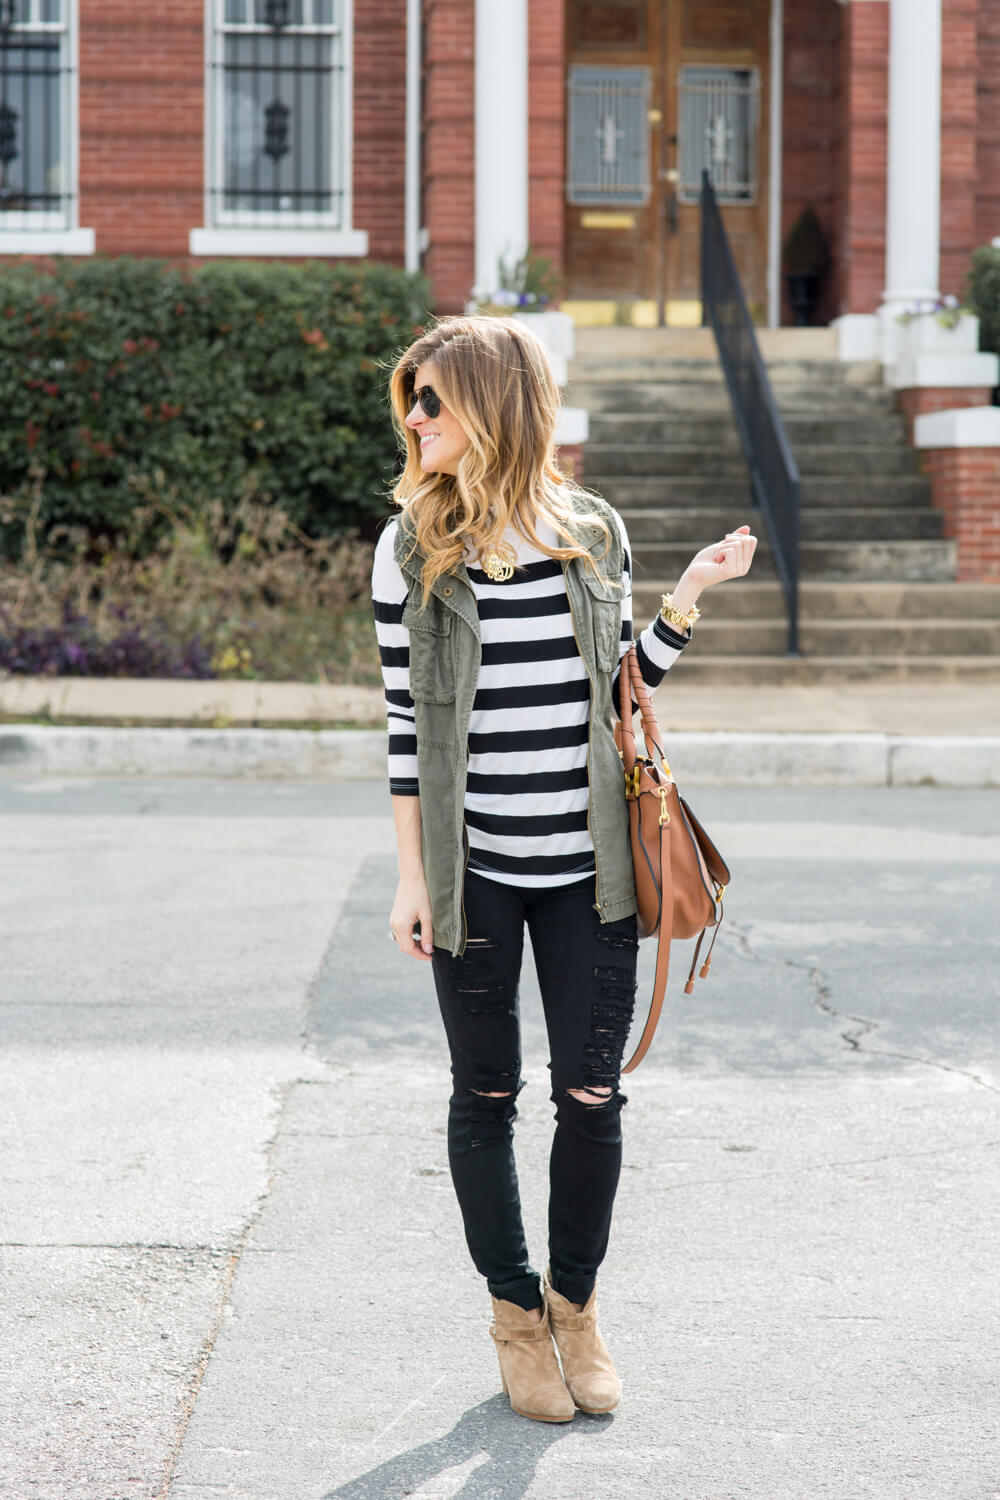 e2e6b02535 What to wear with black jeans - 30+ Black Jeans Outfit Ideas